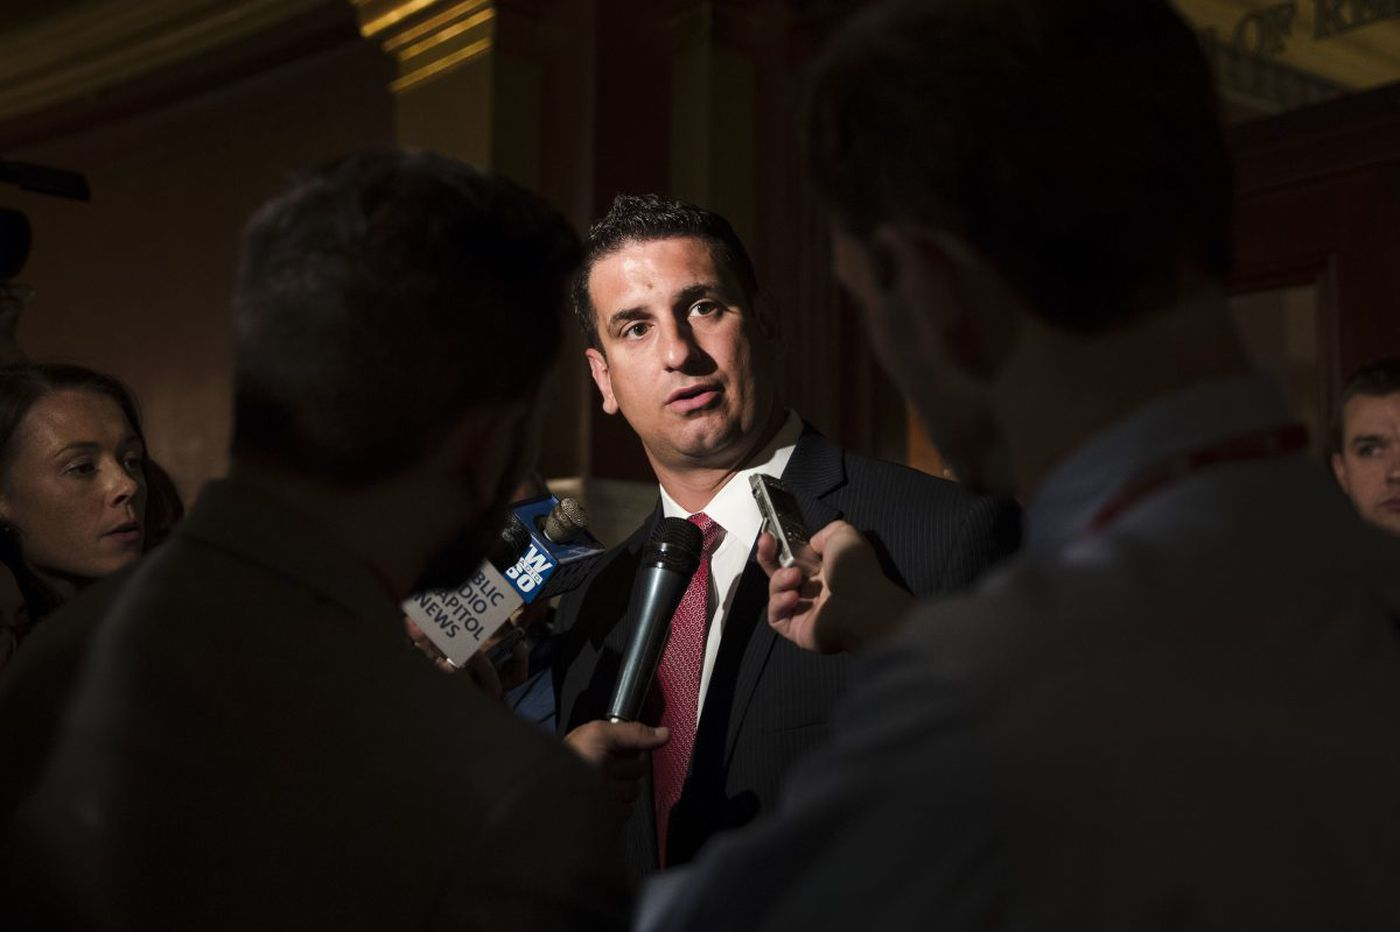 Pa. House leader signals budget impasse likely to linger